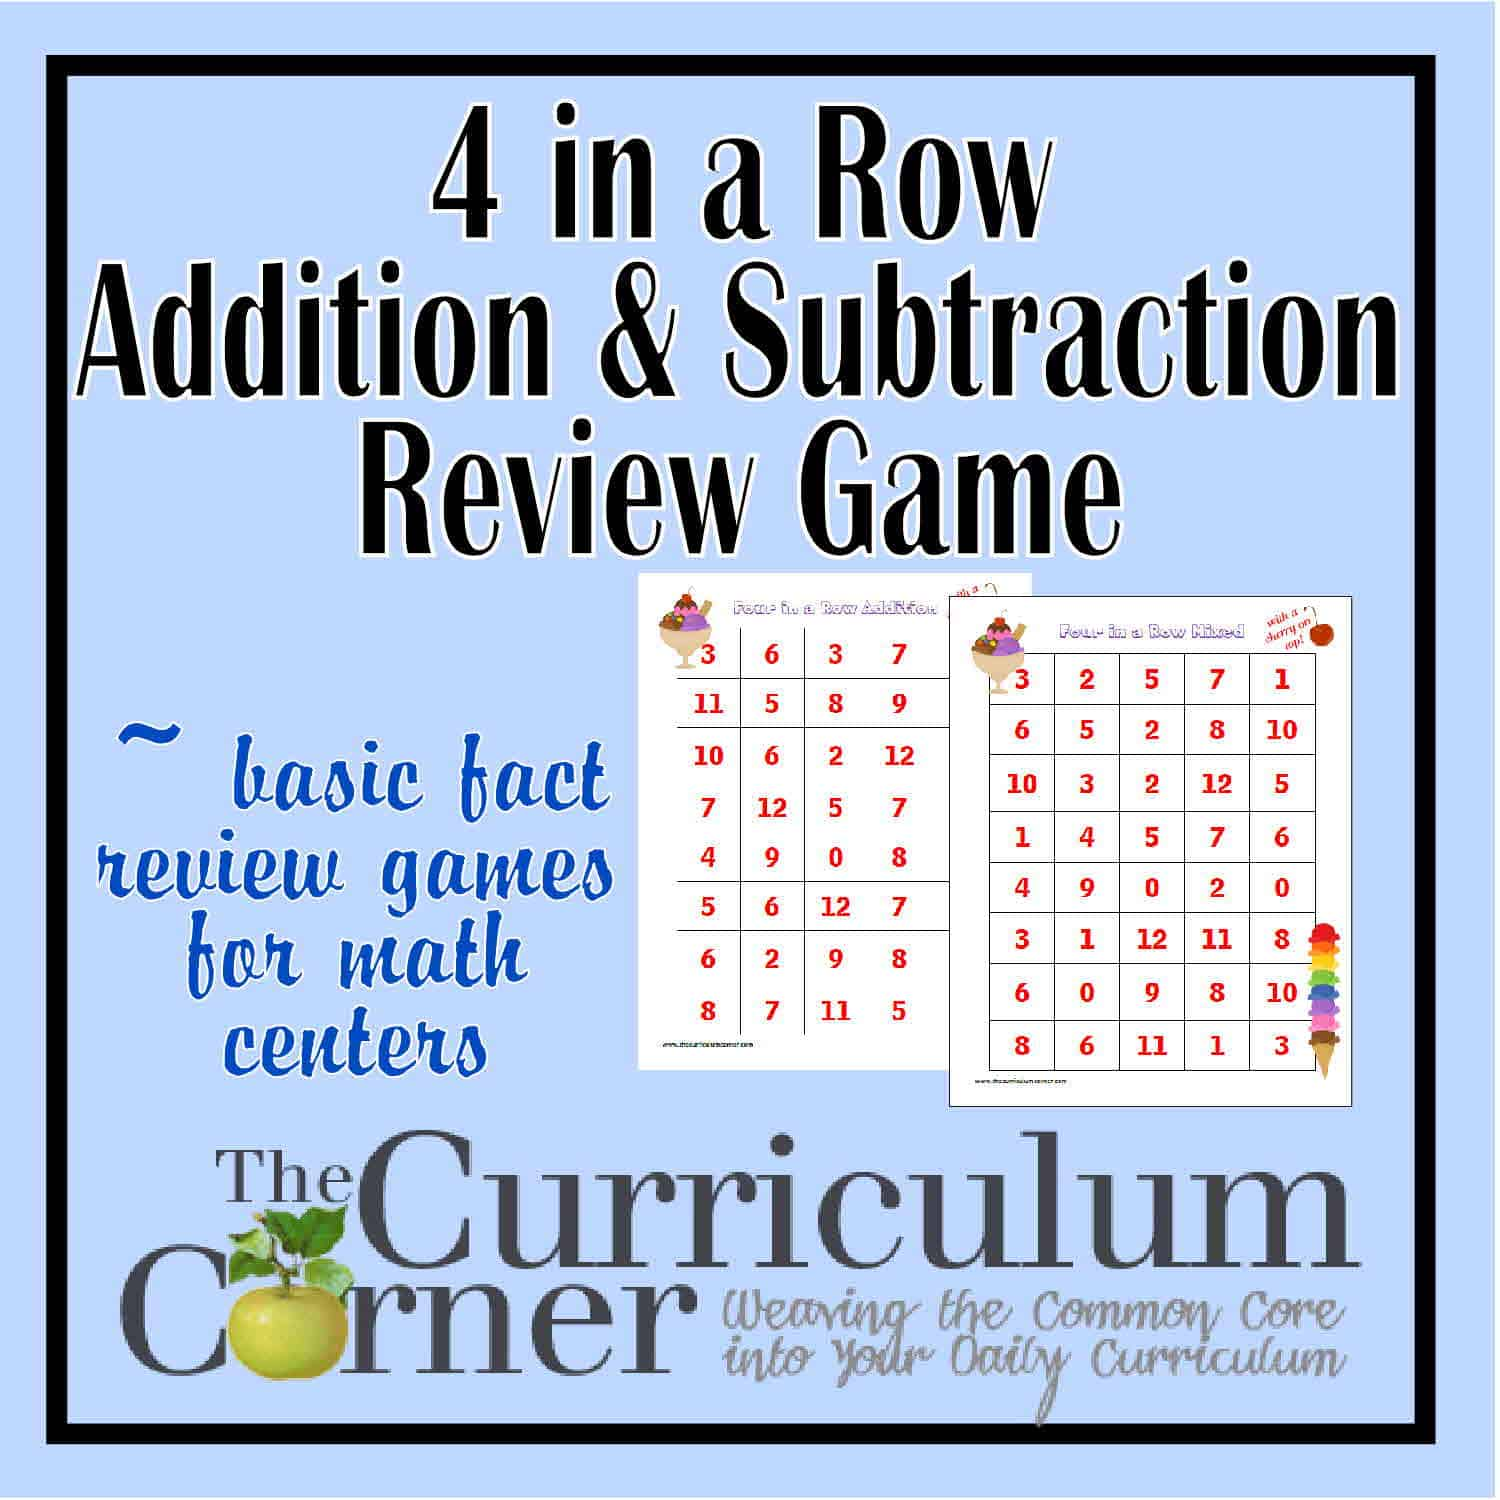 Math Facts Archives - Page 12 of 14 - The Curriculum Corner 123